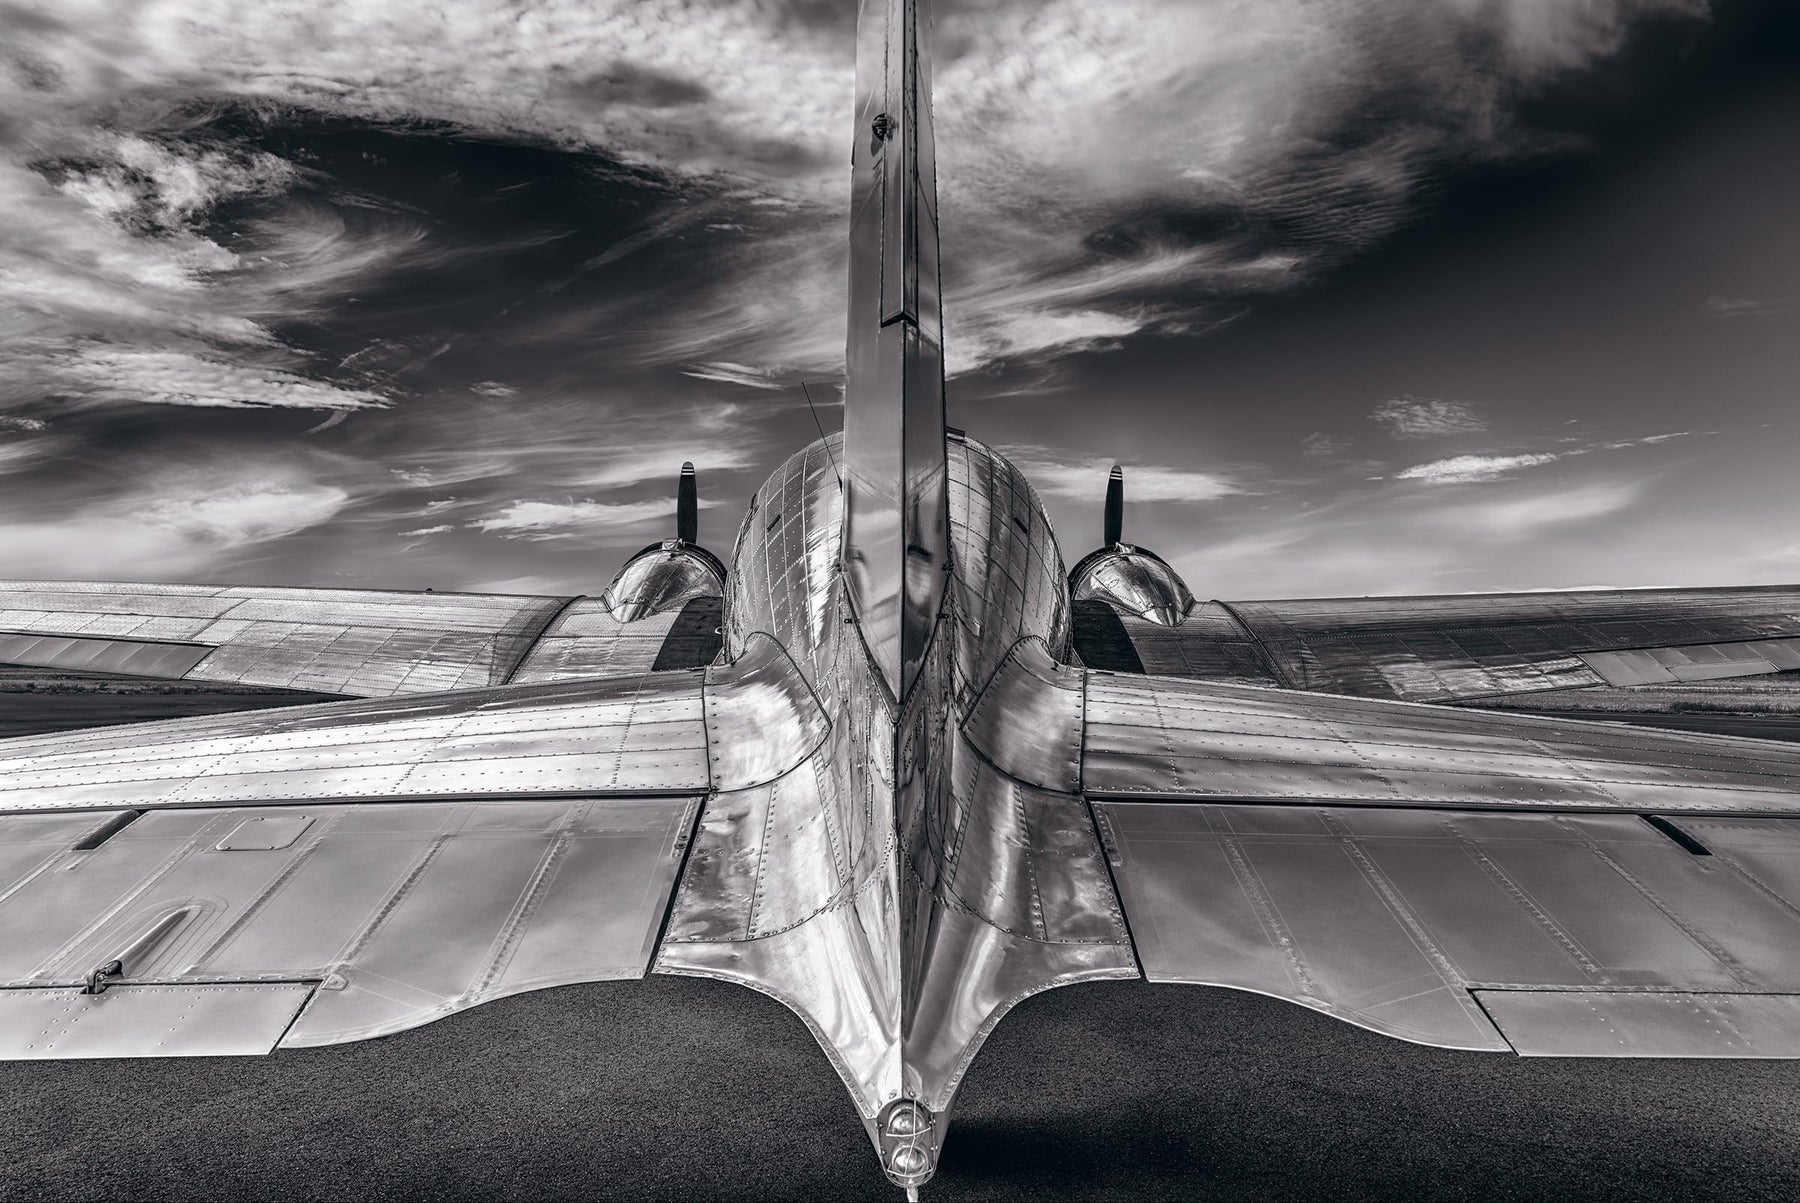 Black and white back view of a DC-3 airplane on a runway in Aurora Oregon looking out to a cloudy sky